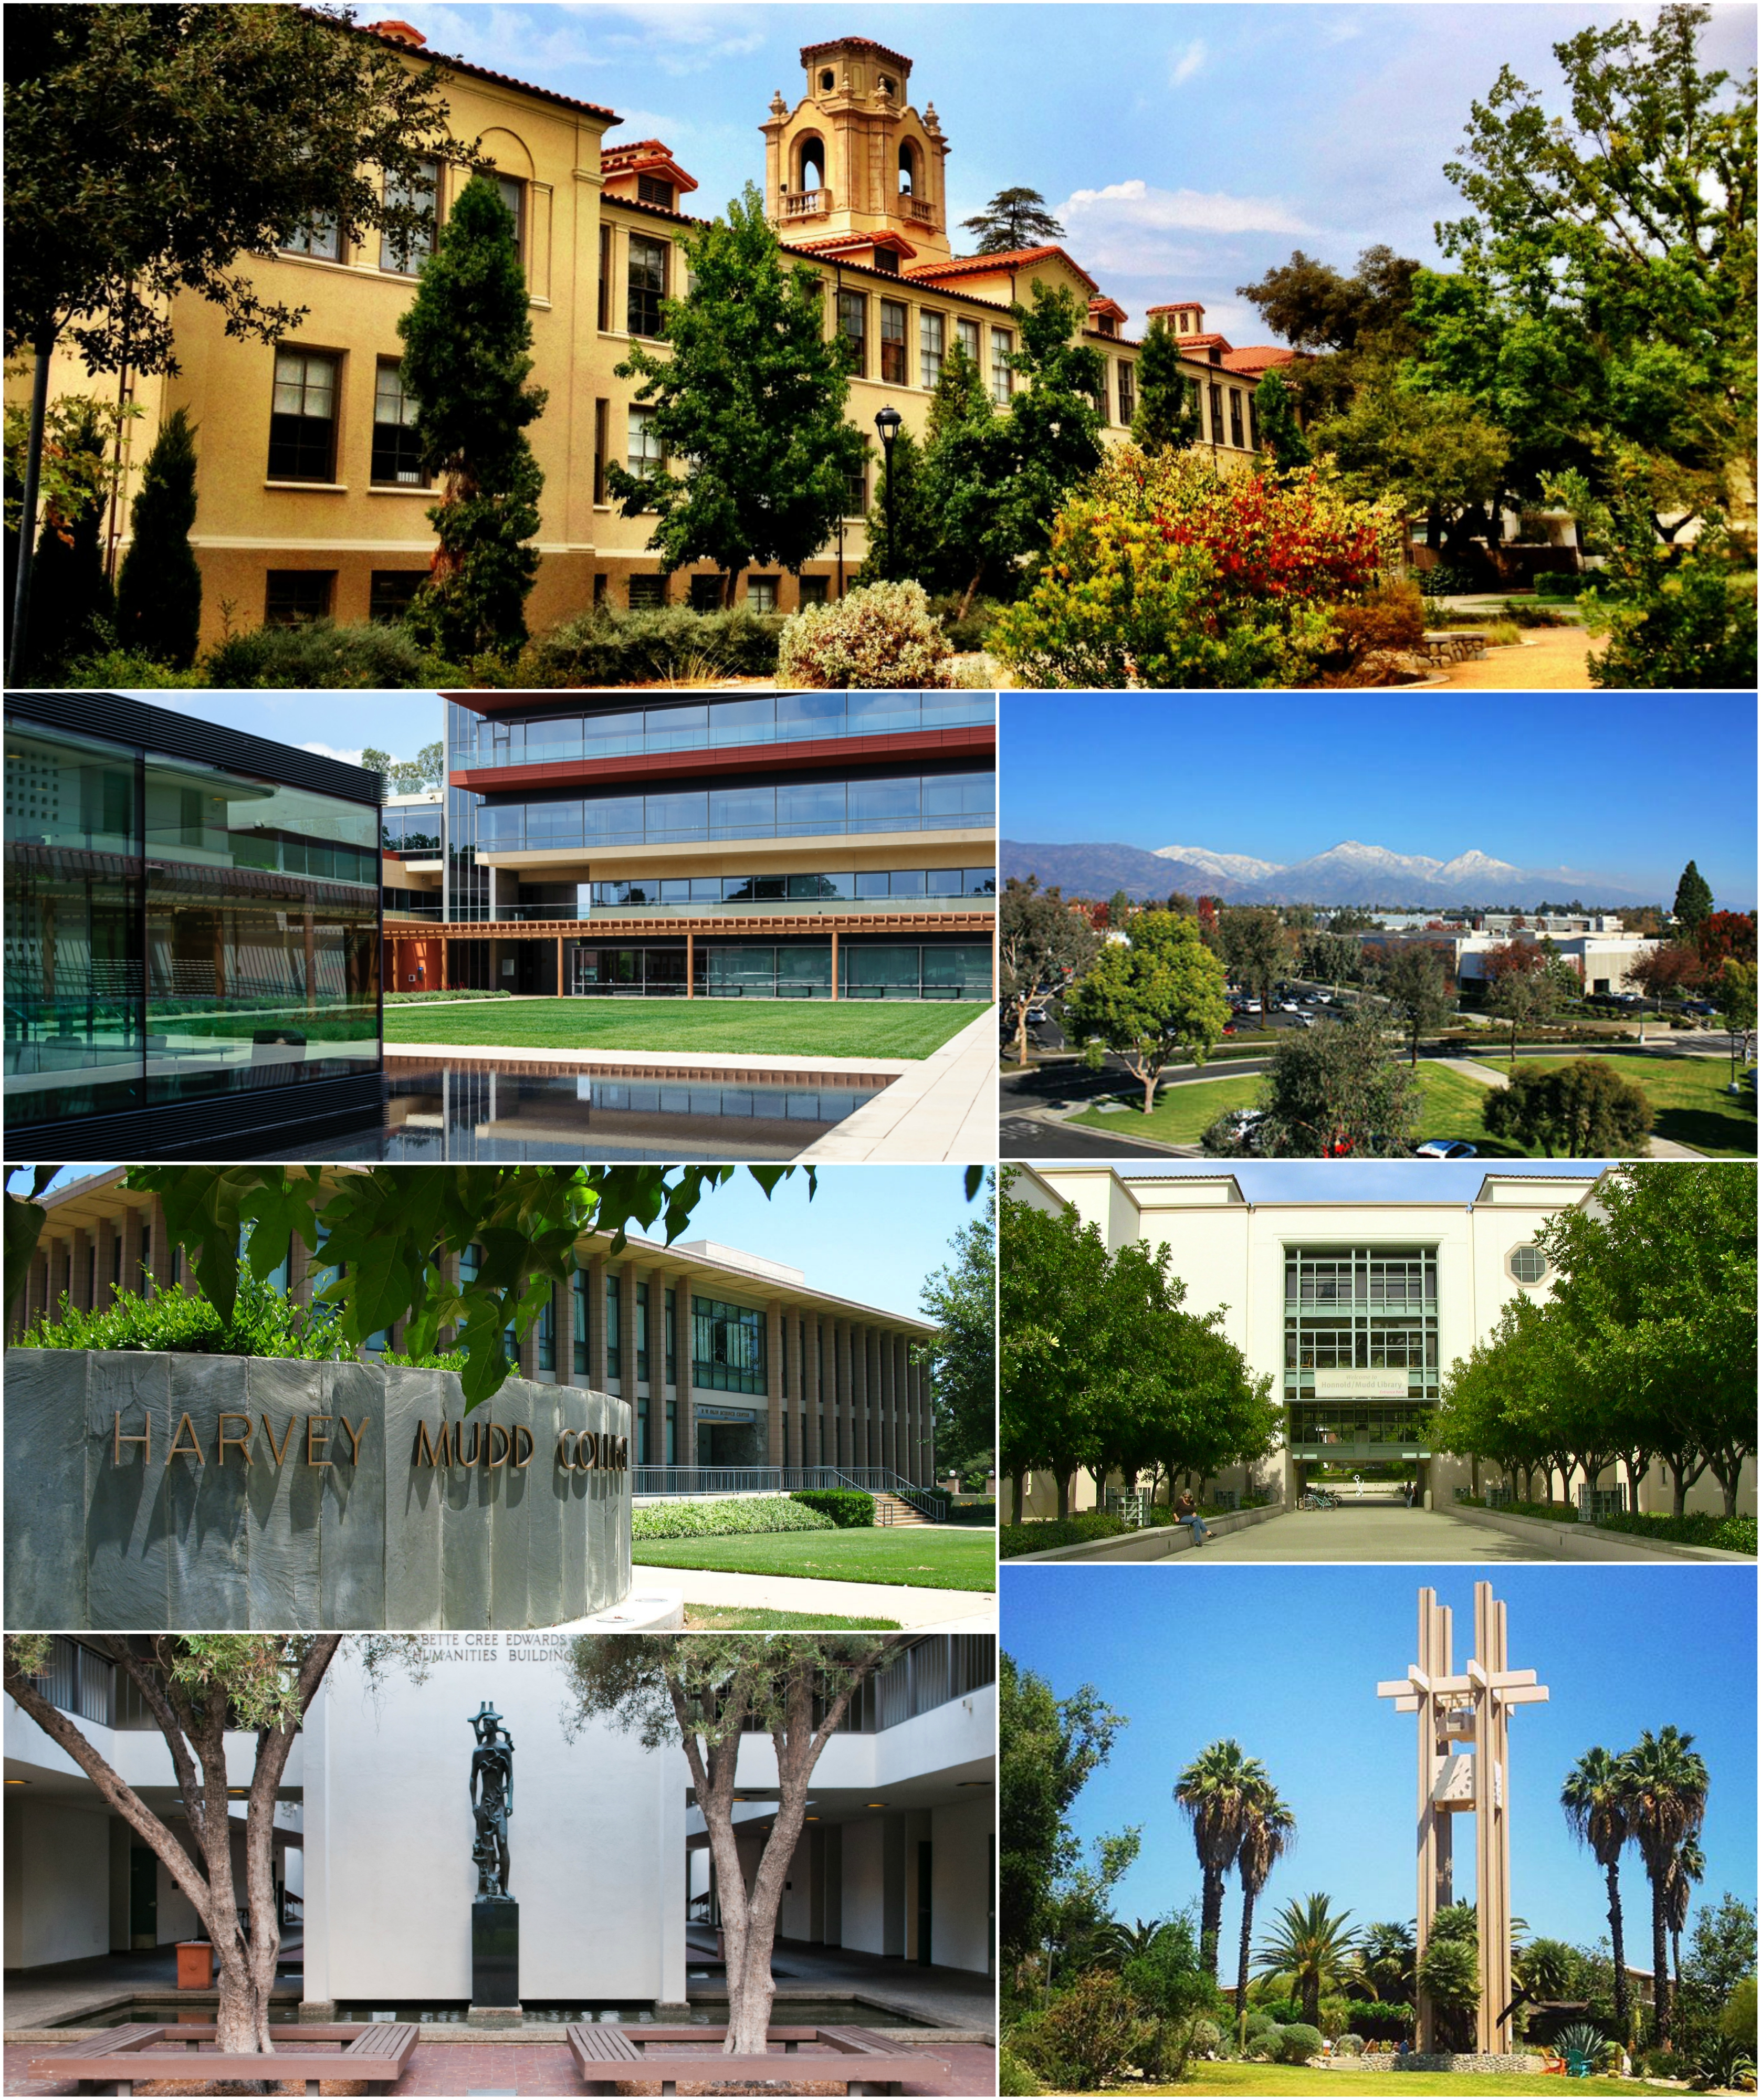 Claremont Colleges - Wikipedia